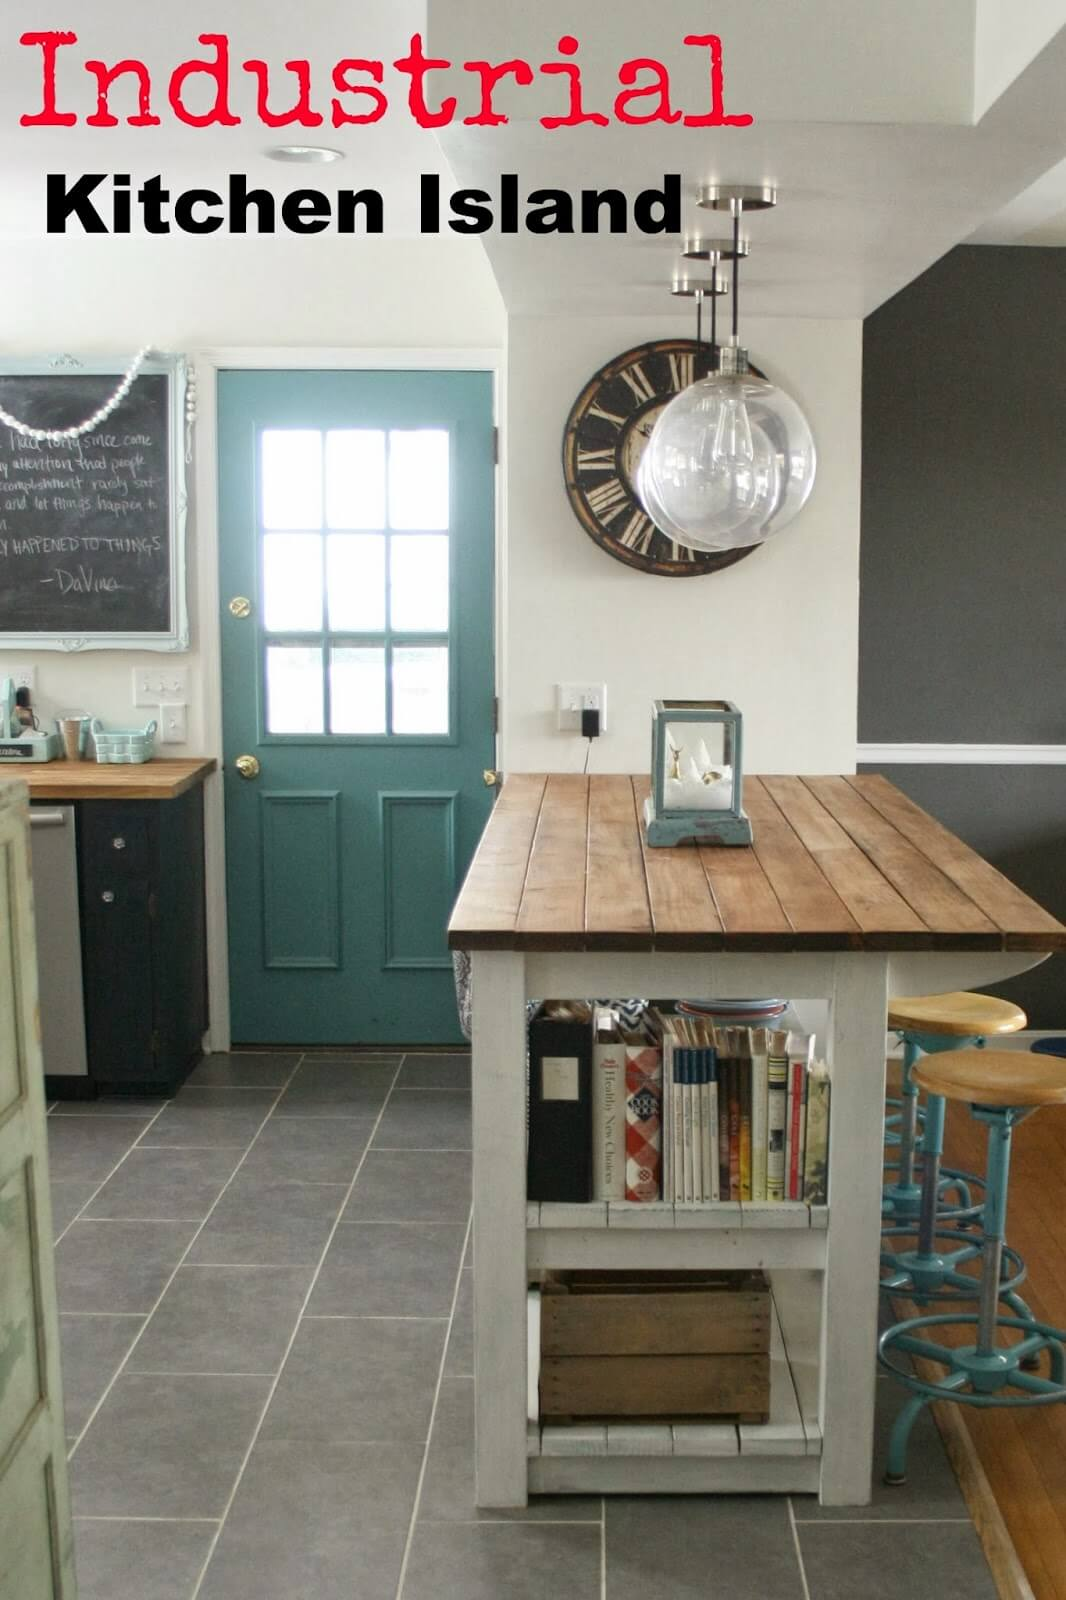 Big Kitchen Islands can Double as Breakfast Bars